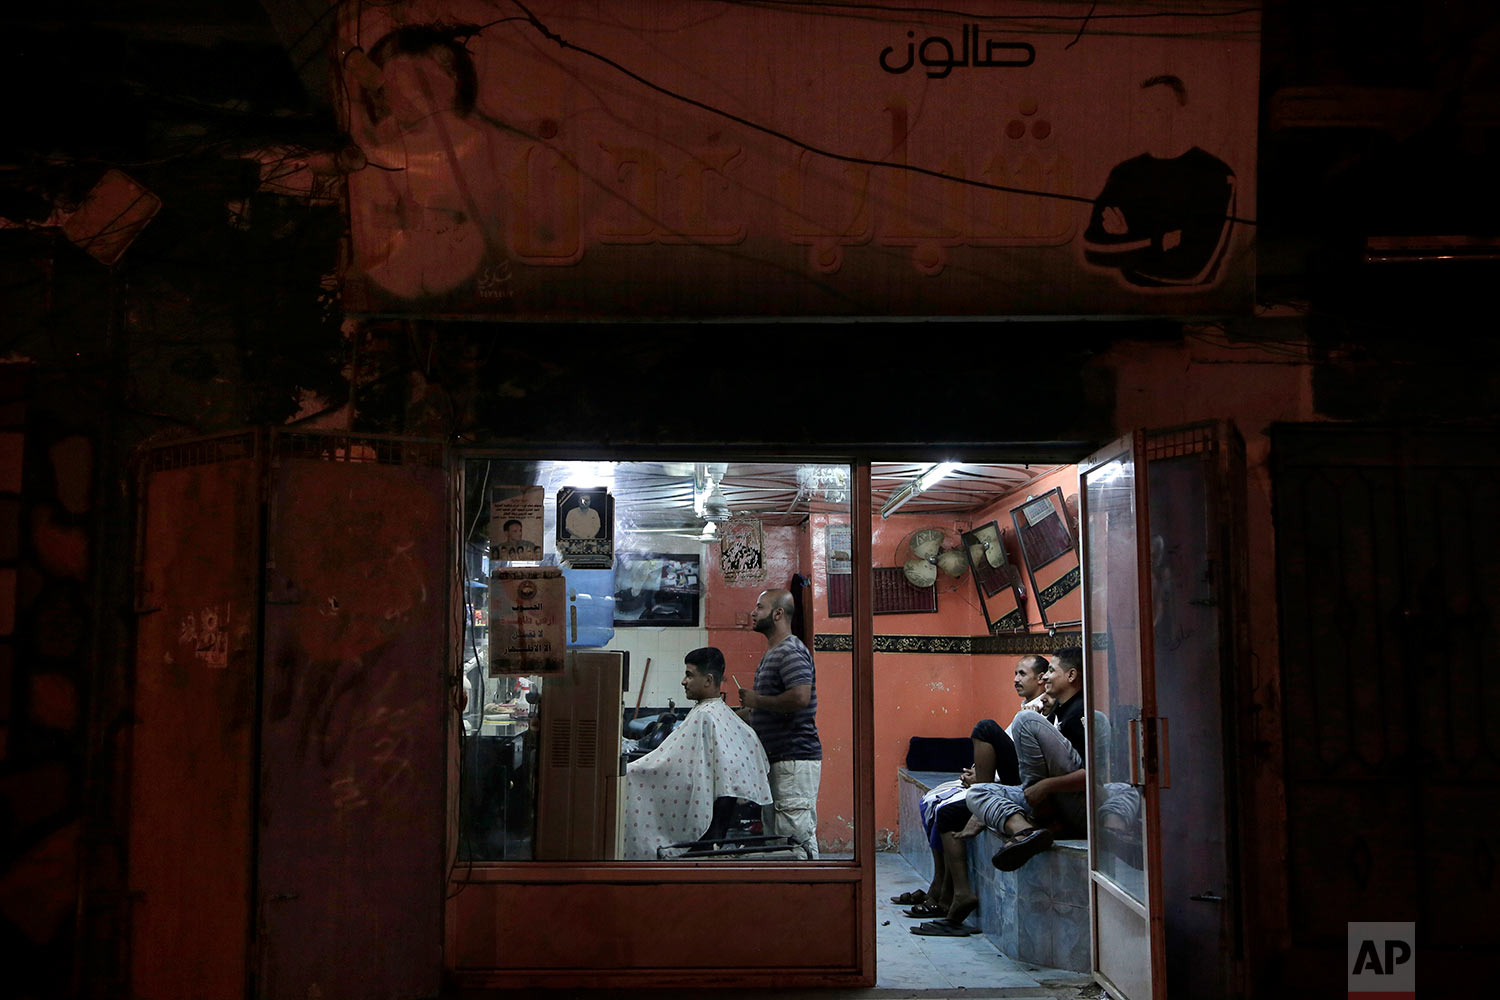 18-year-old Abdullah gets his hair cut at a barbershop in Aden, Yemen. (AP Photo/Nariman El-Mofty)